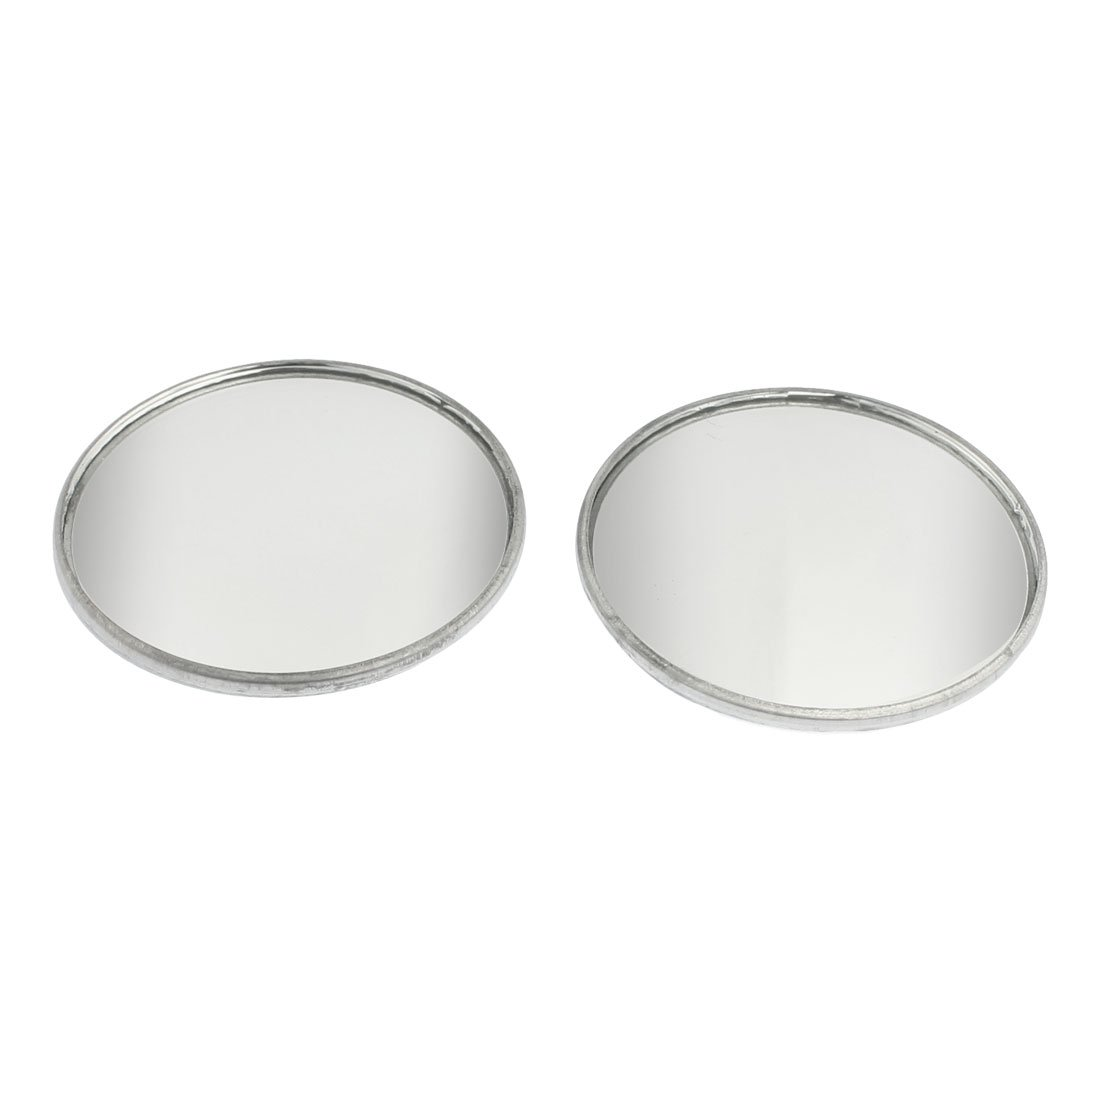 uxcell 2 Pcs Adhesive Round Side Rearview Blind Spot Mirrors Silver Tone 2' a12101700ux0084